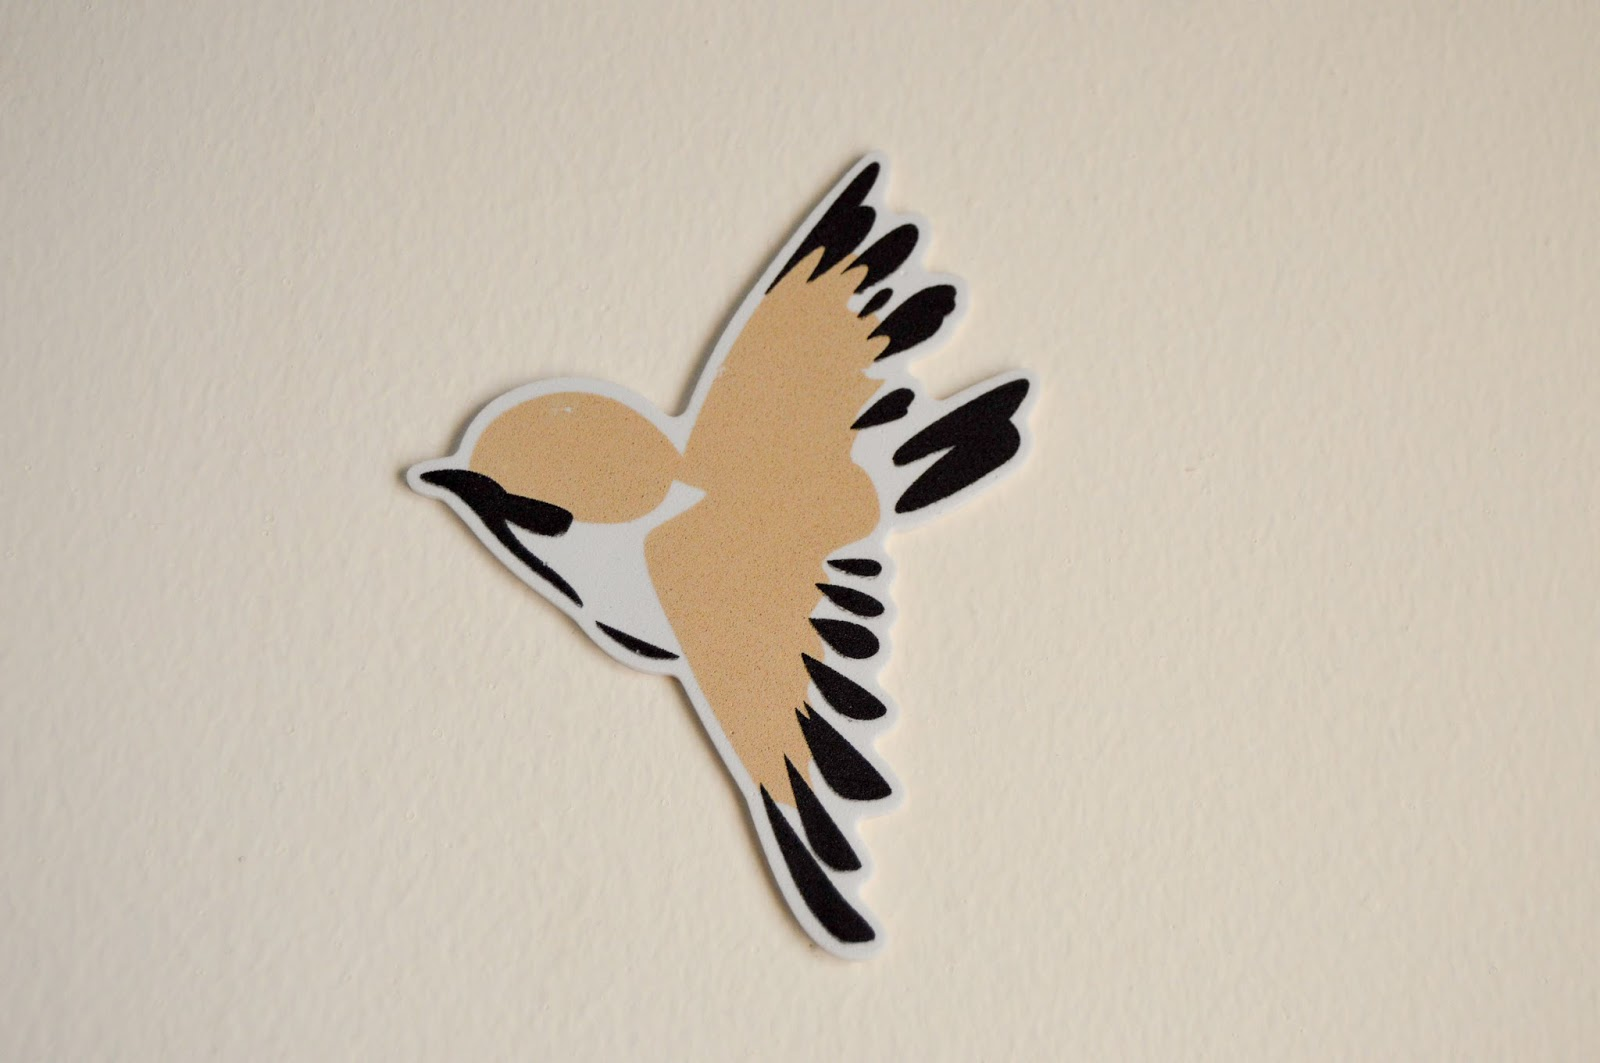 Flying Sparrow 3D Sticker Wallpaper free photos